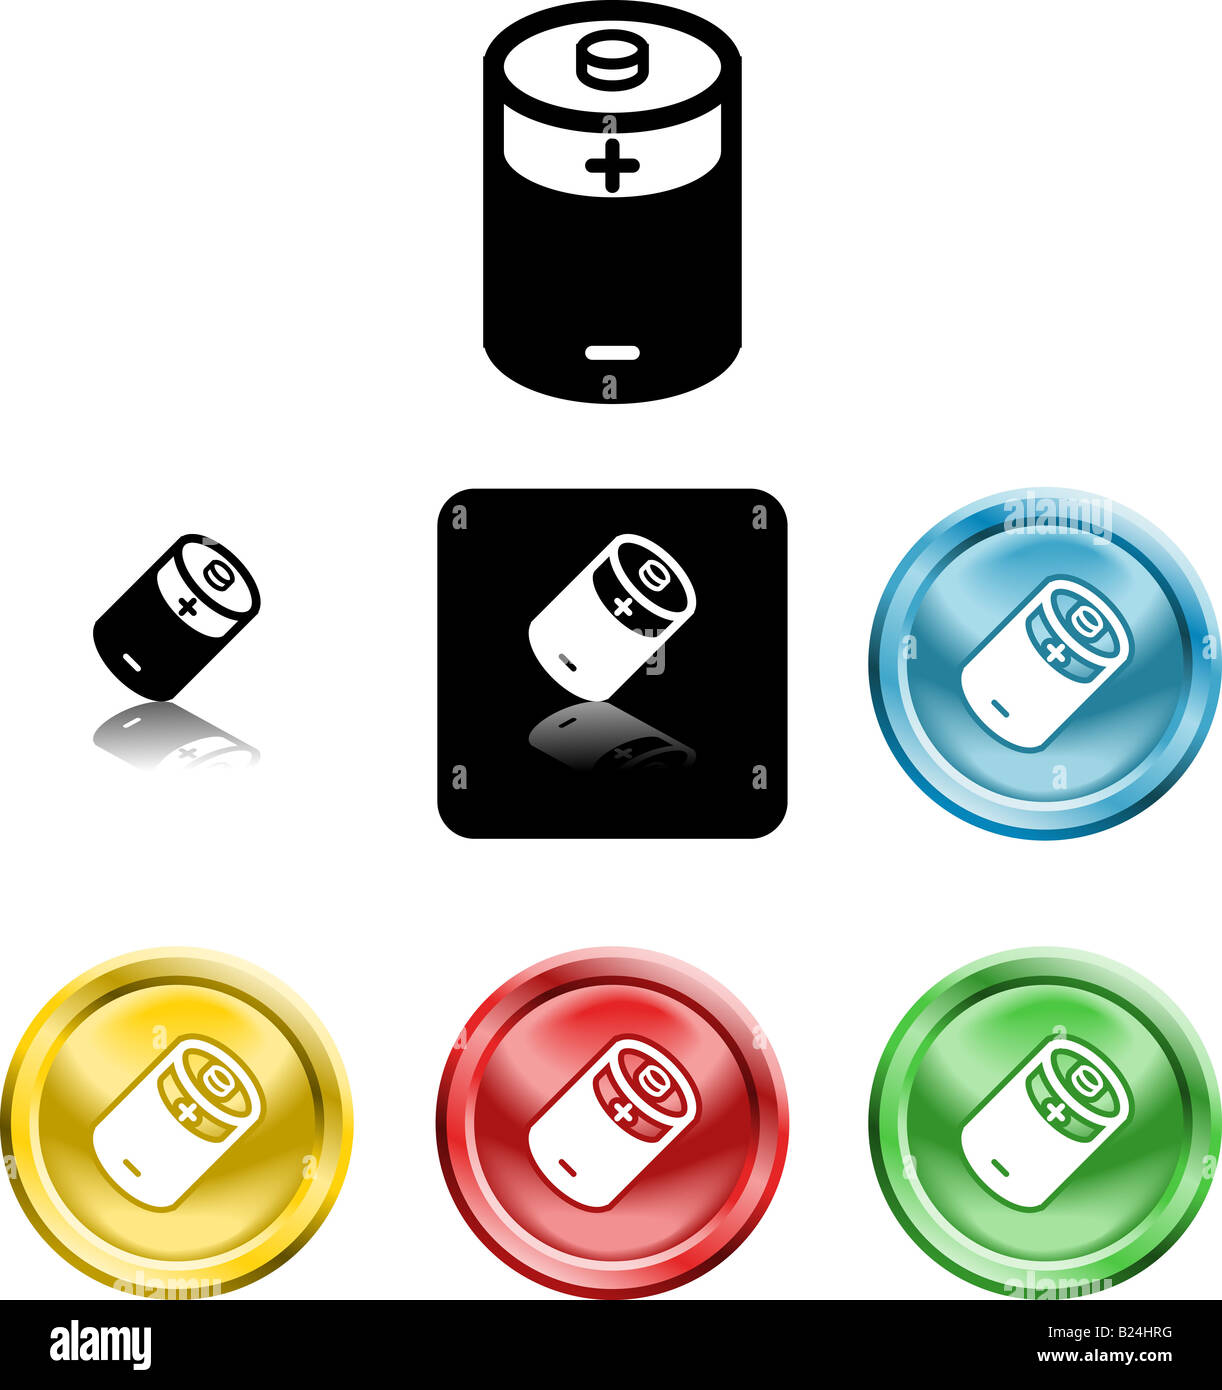 Several versions of an icon symbol of a stylised battery - Stock Image